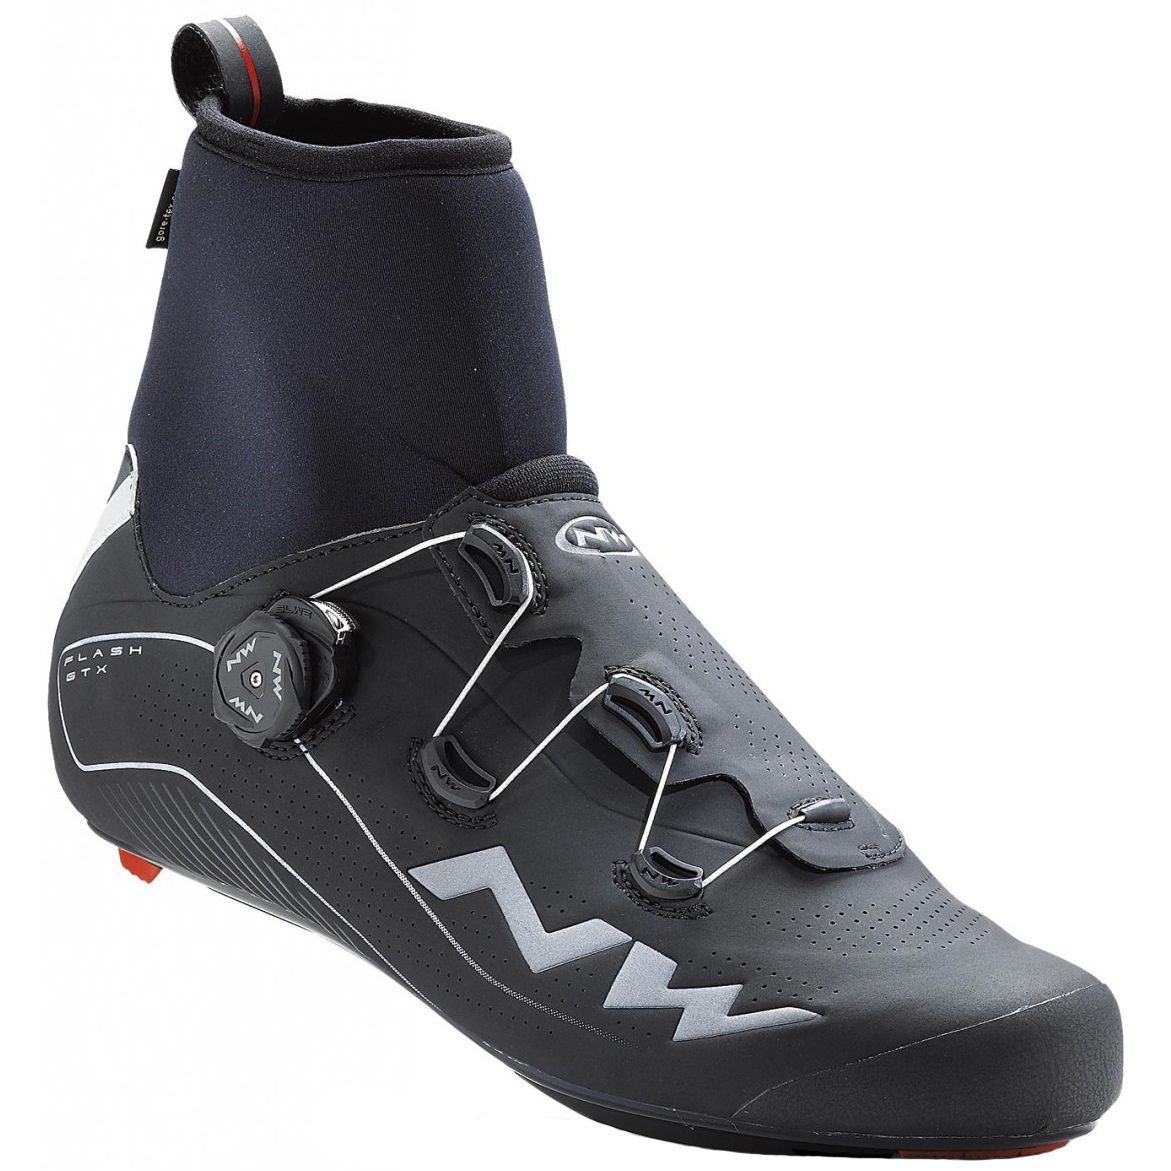 Winter Road Cycling Shoes Northwave Flash Gtx Shop